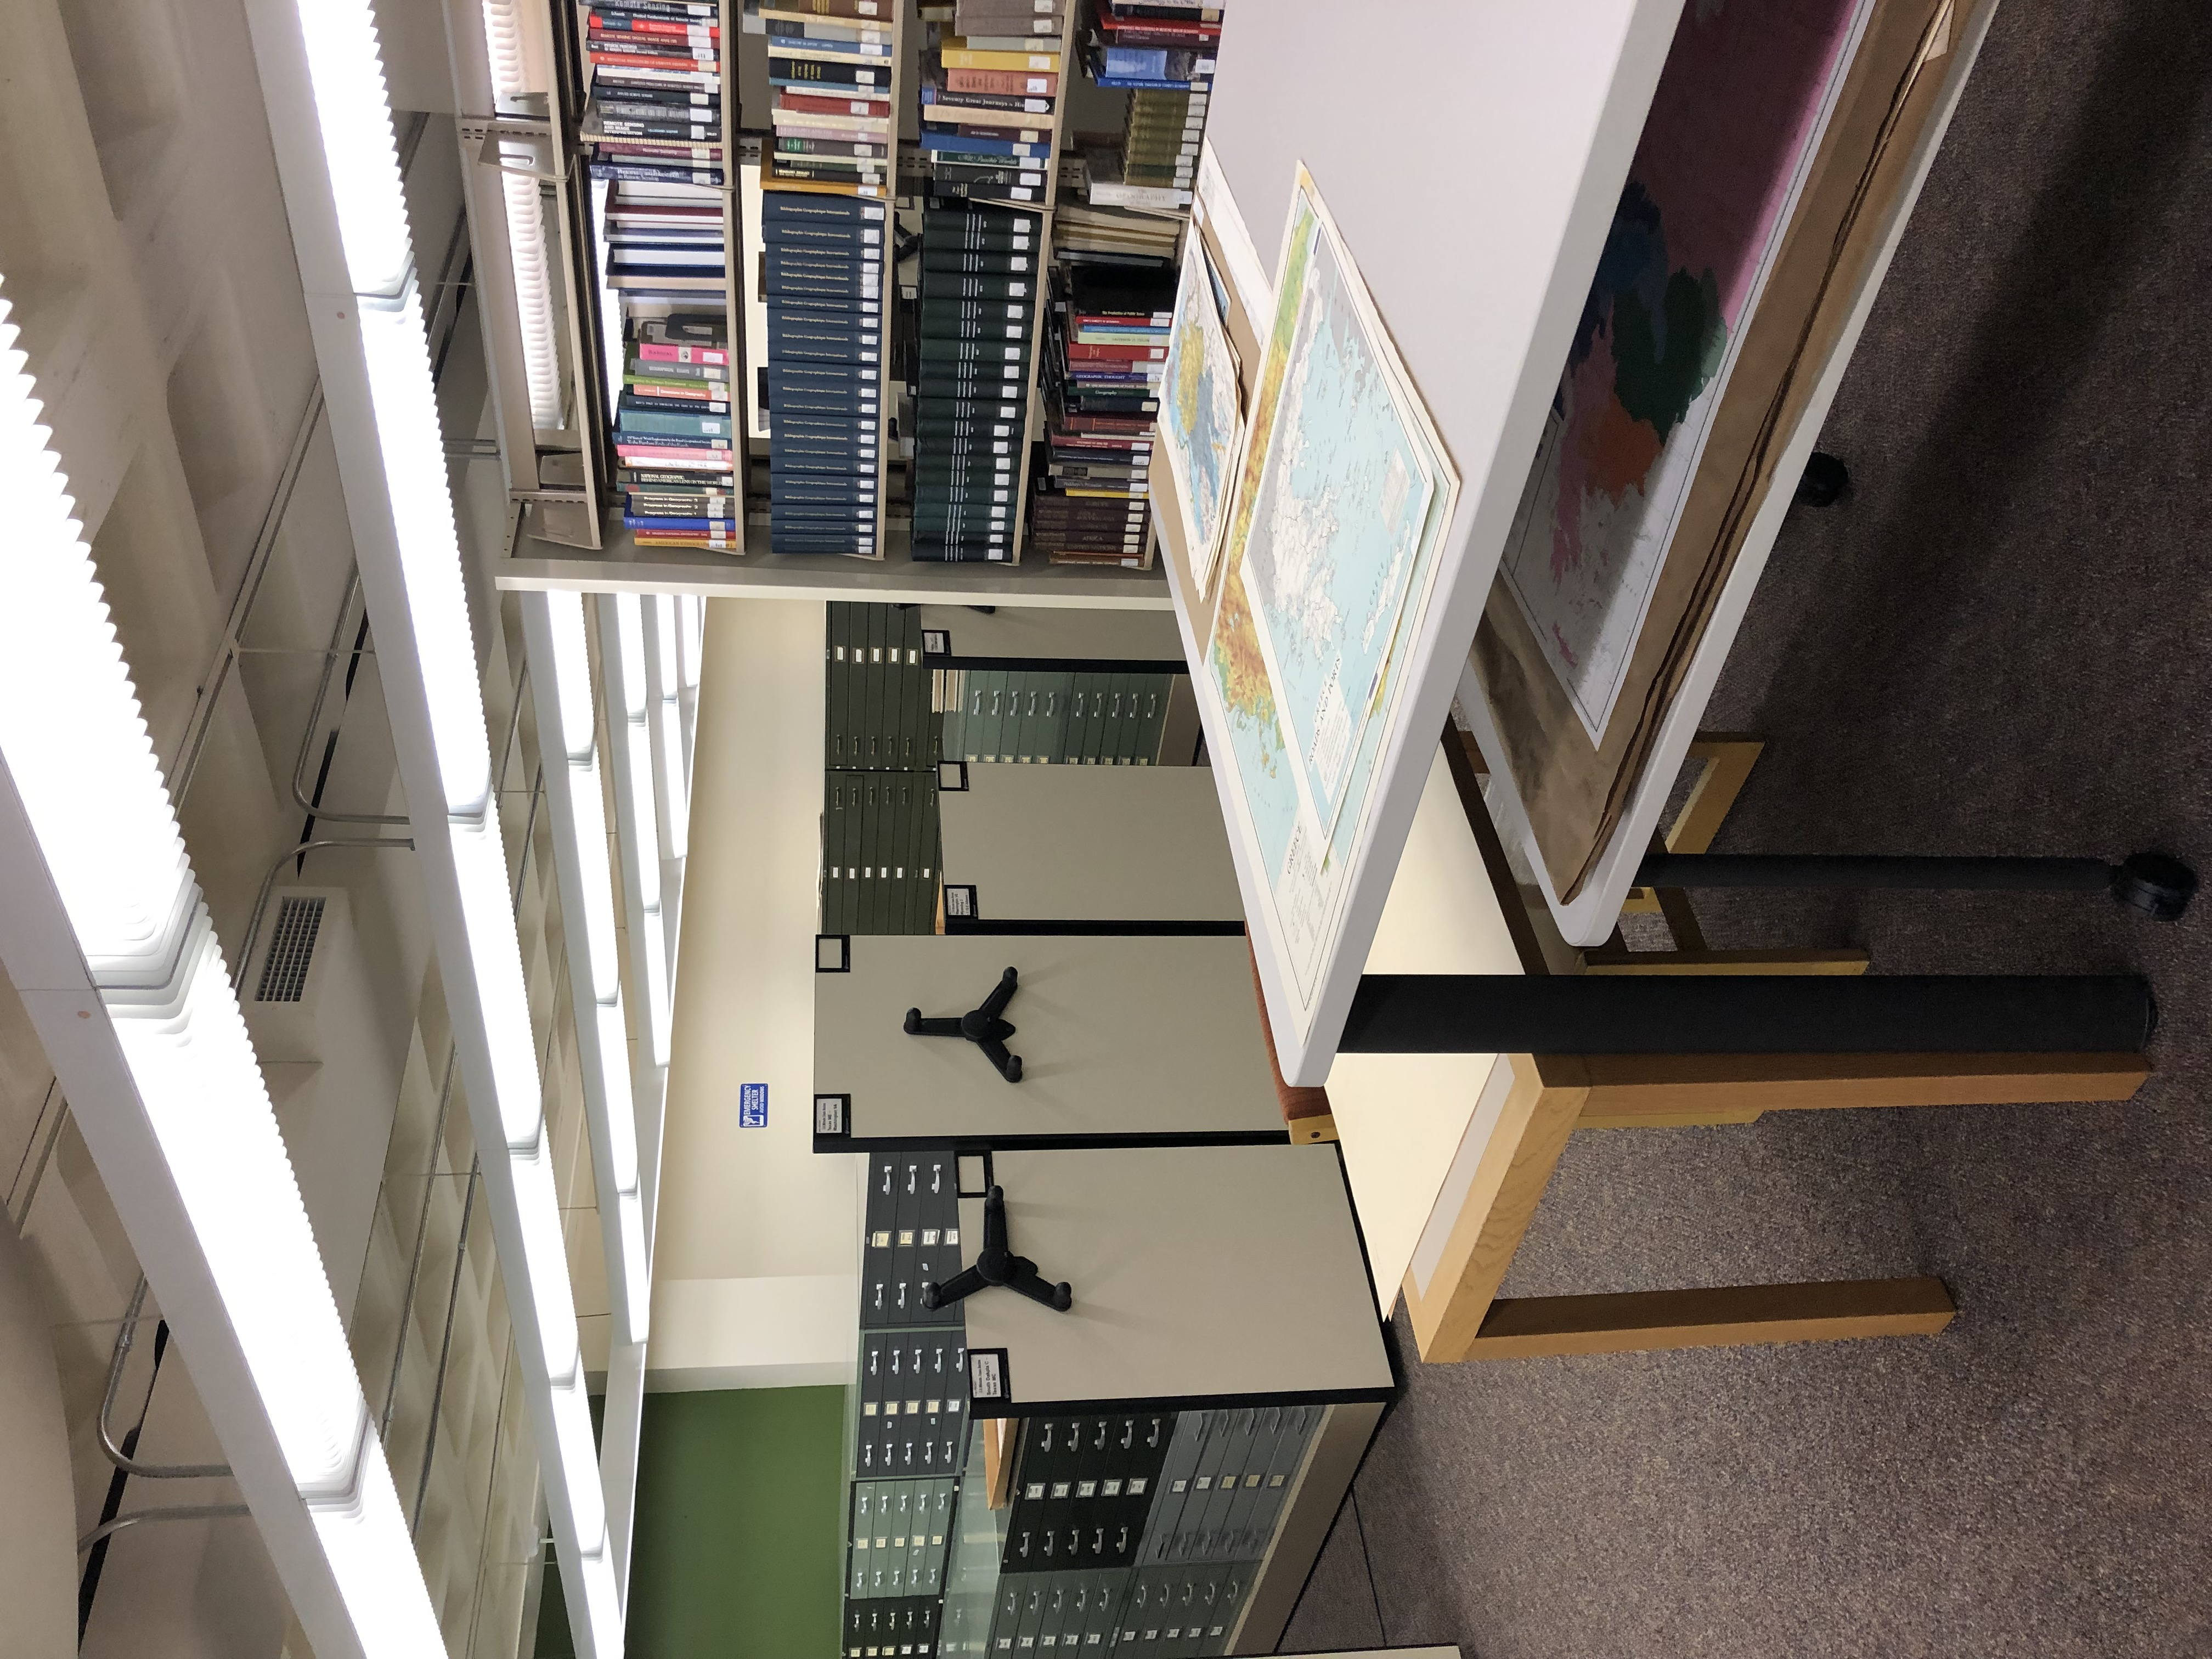 Map collection shelves and tables